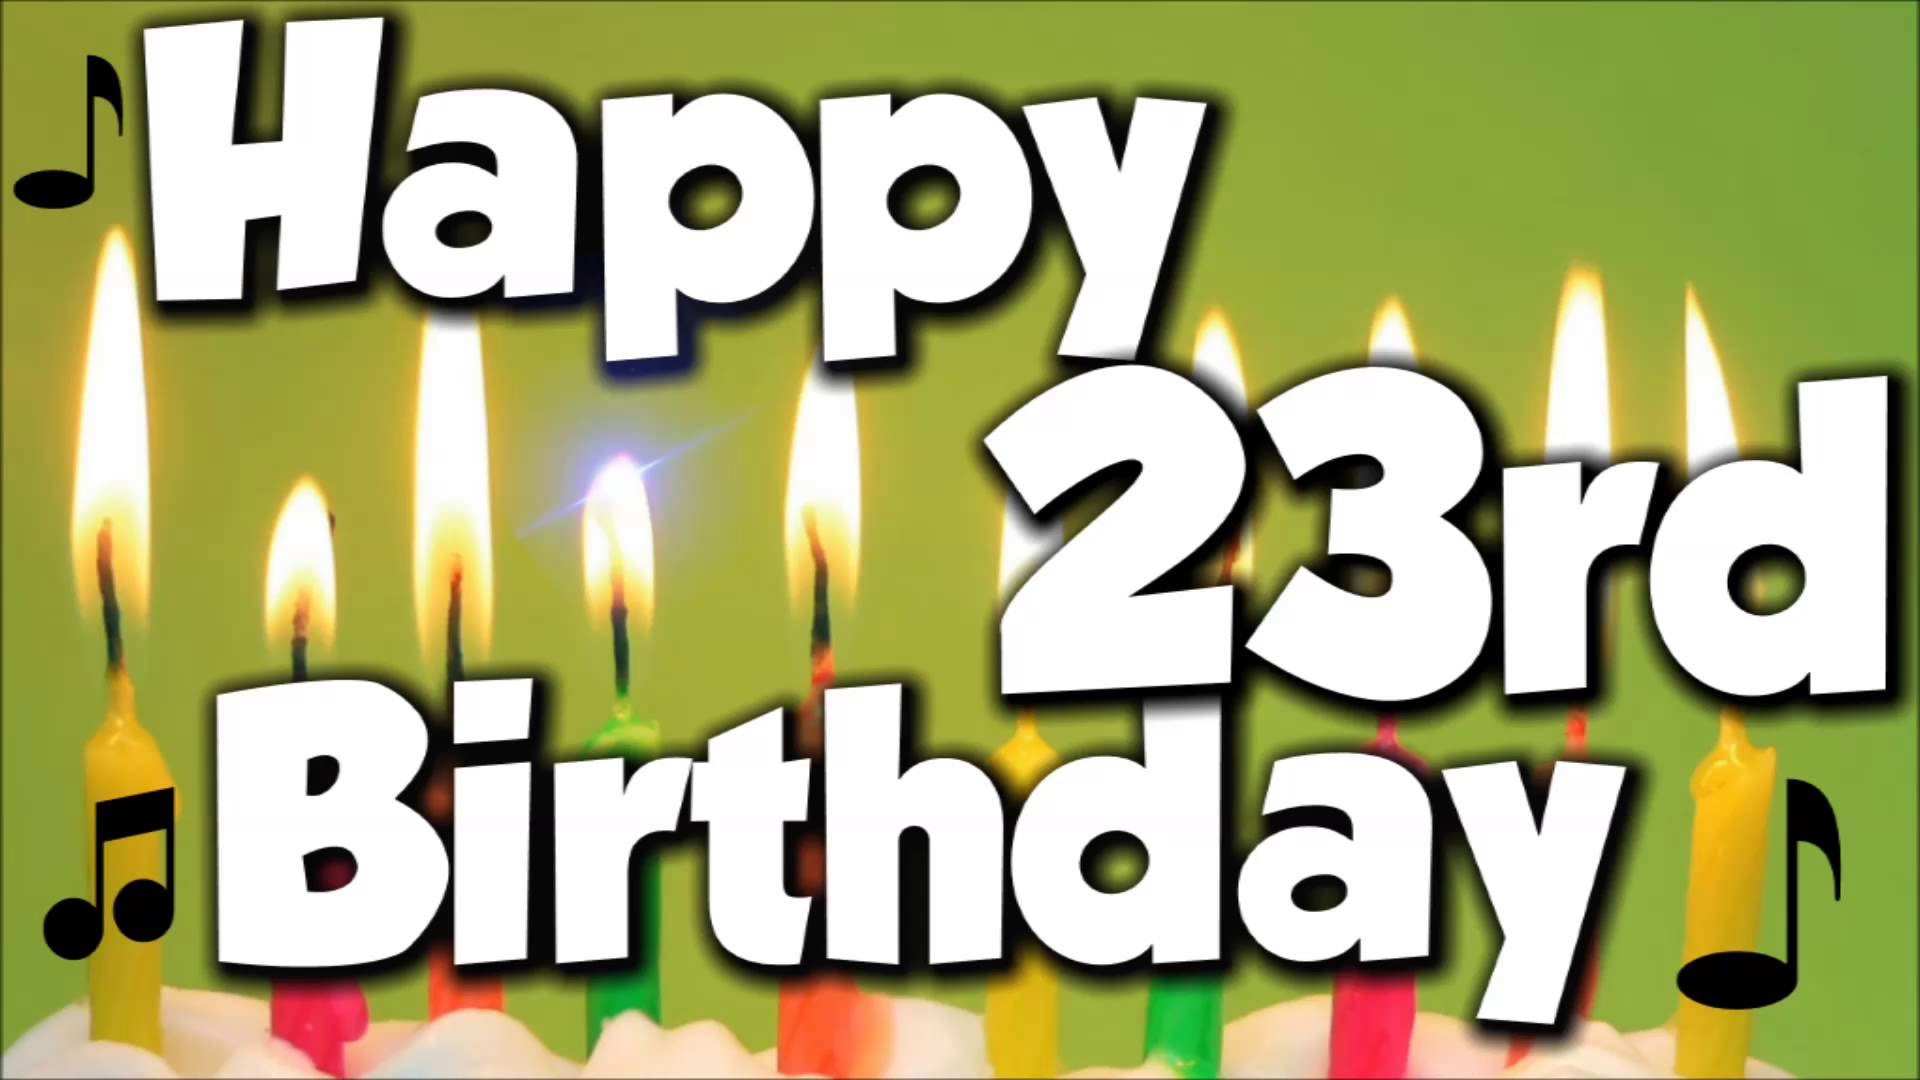 Happy 23th Birthday Wishes And Greetings - Birthday Wishes Zone